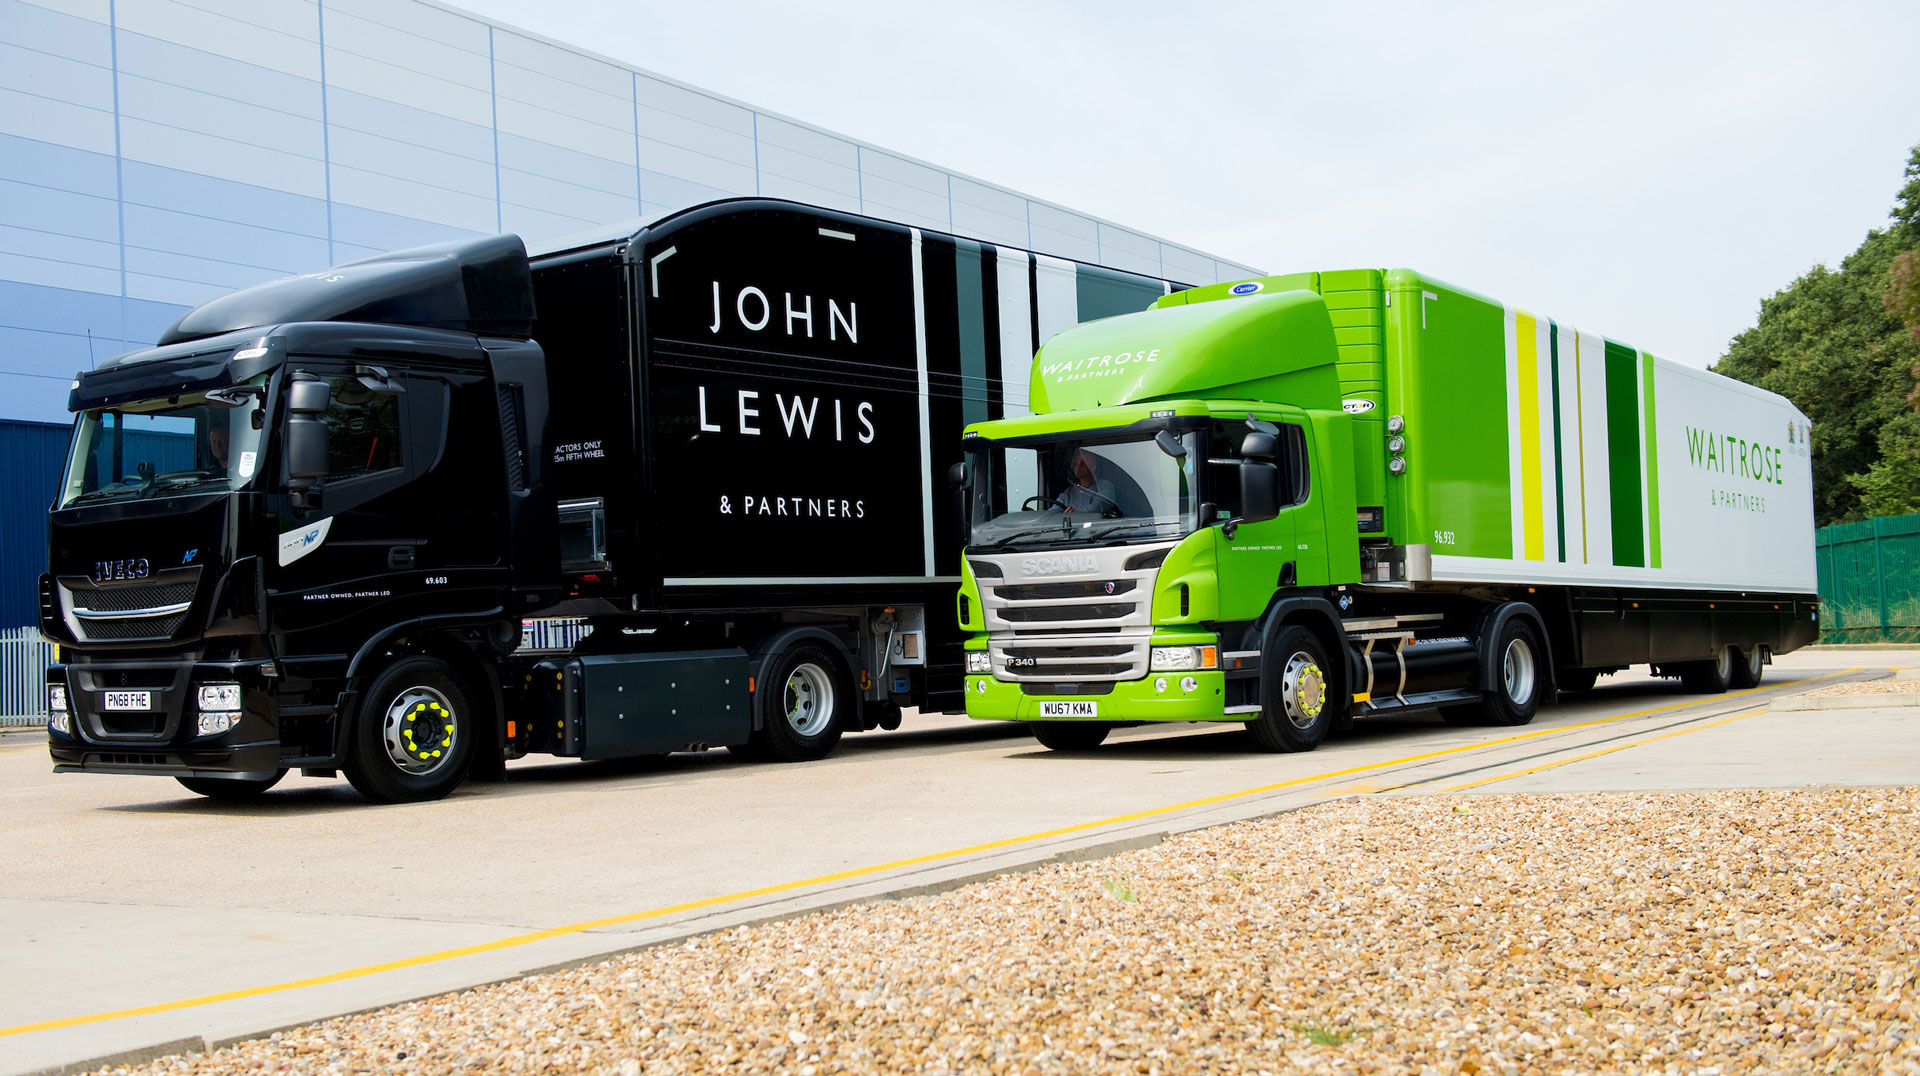 Don-Bur assist the John Lewis Partnership with rebrand of vehicle fleet